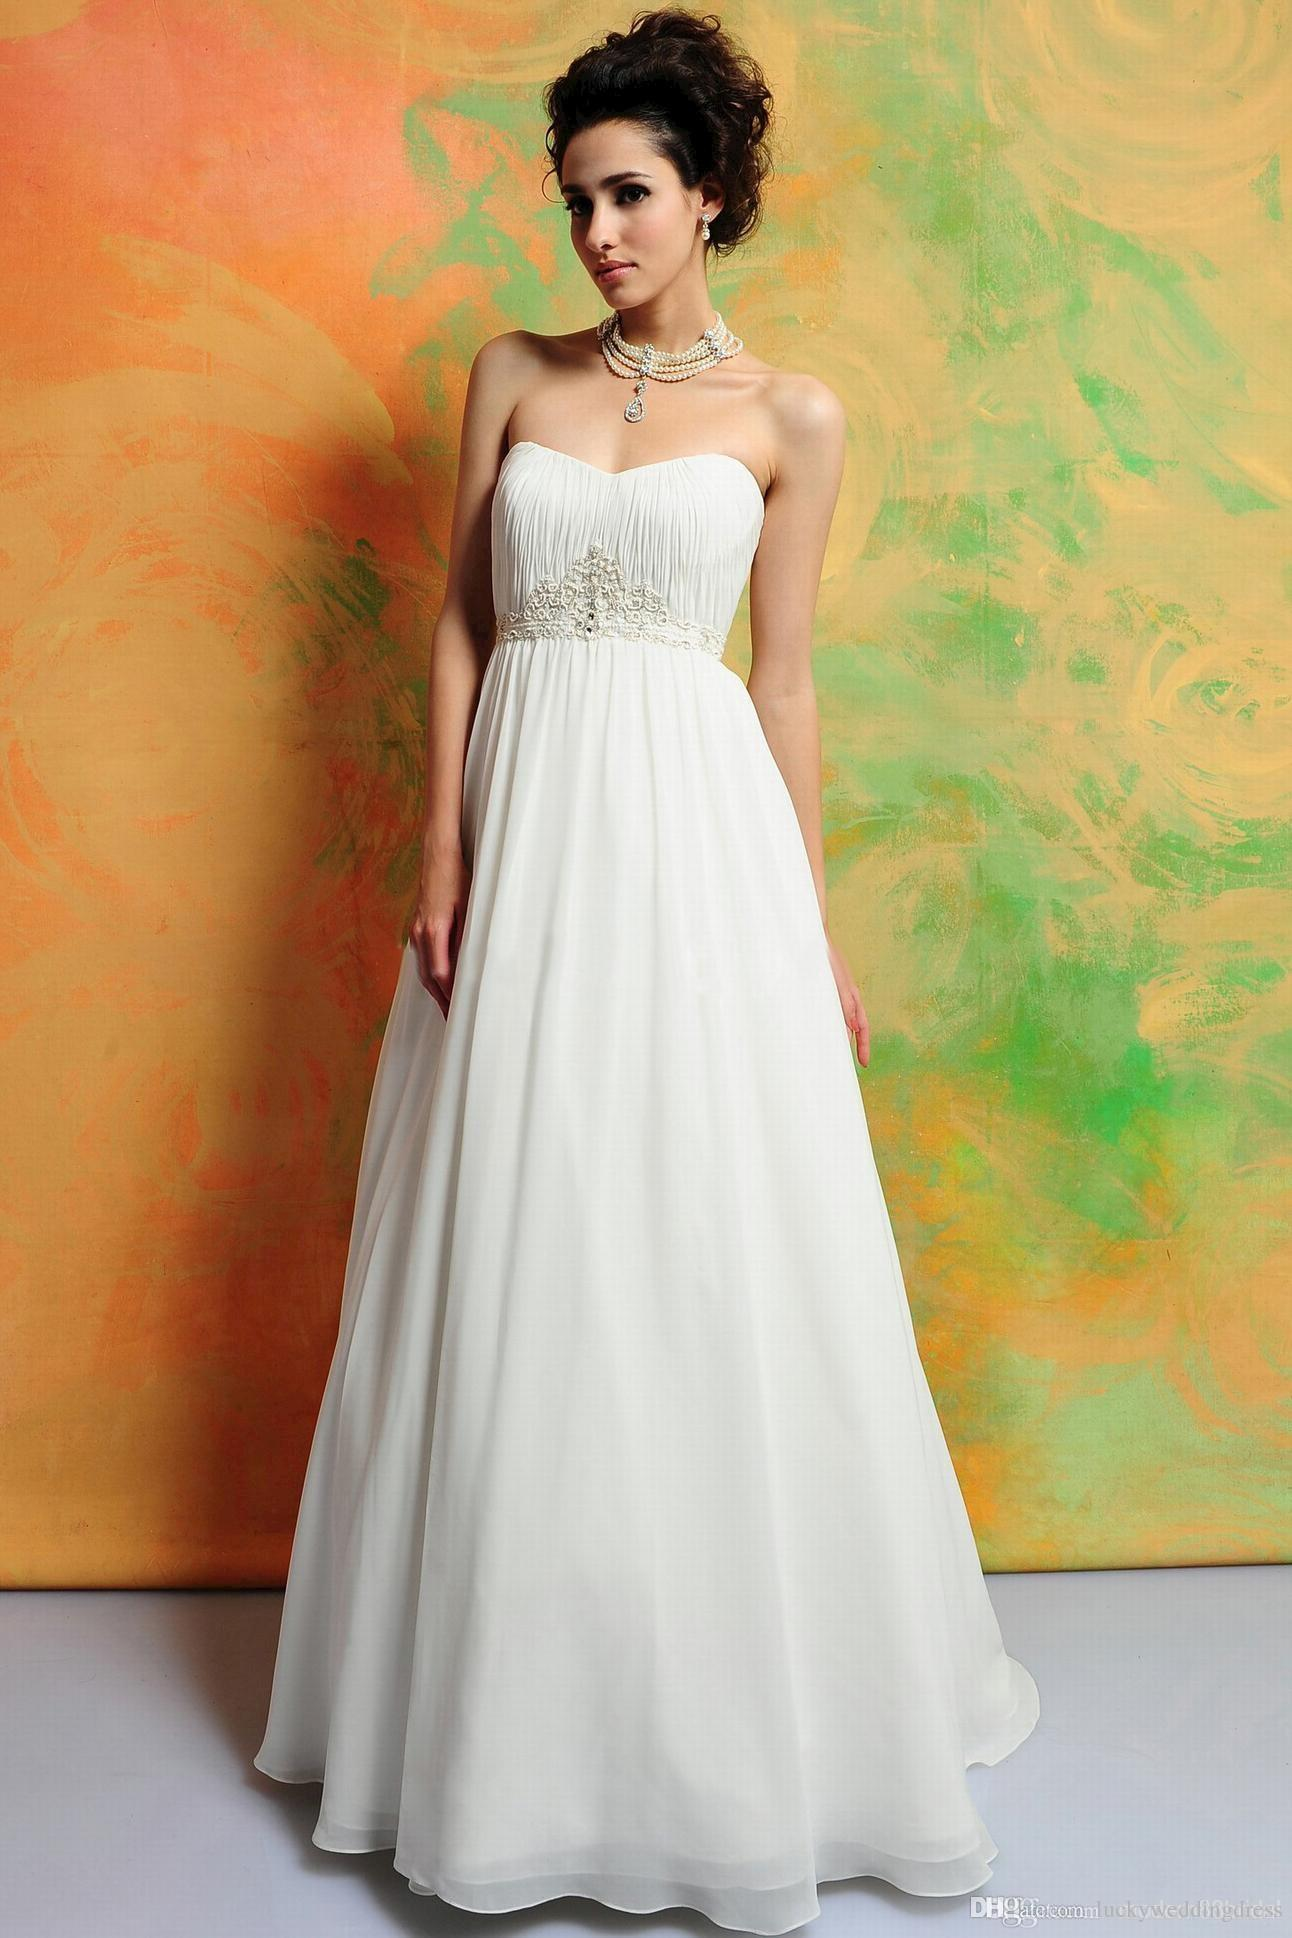 2015 wedding dress empire waist pregnant maternity dress ruffles 2015 wedding dress empire waist pregnant maternity dress ruffles sweetheart strapless sweep prom chiffon gorgeous sash appliques new cheap wedding dresses ombrellifo Gallery